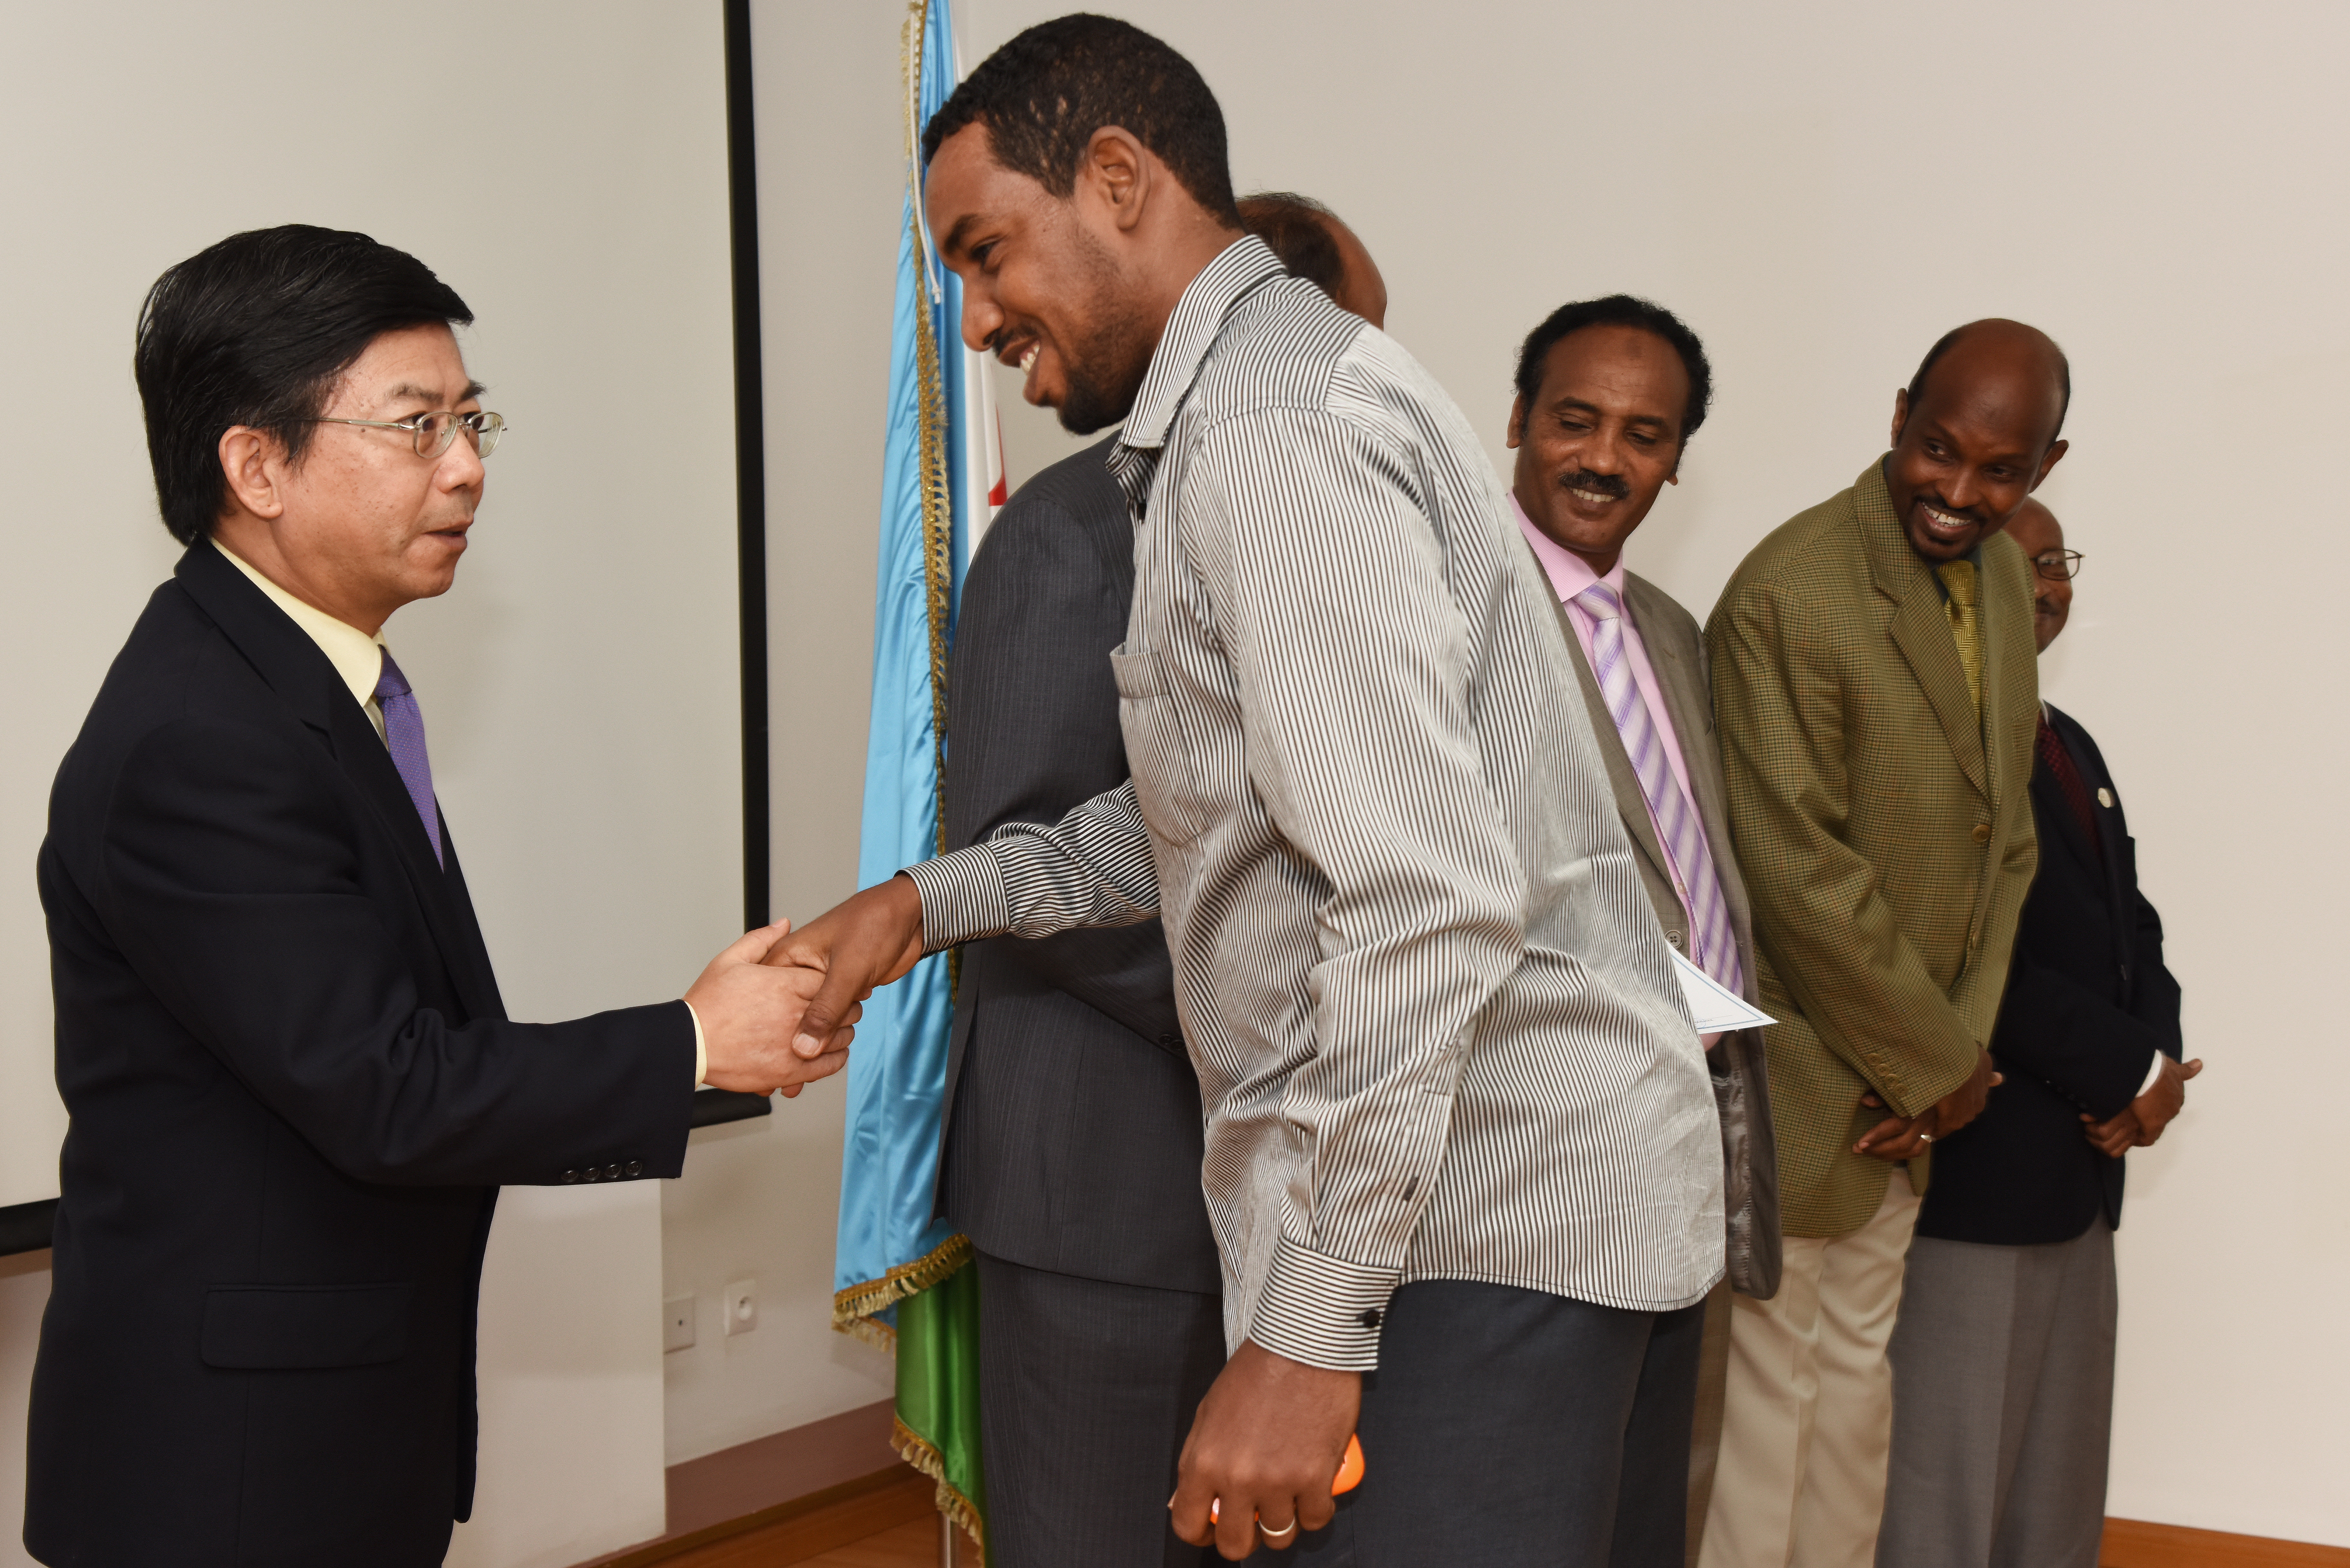 Fu Huaginag, Chinese Ambassador to Djibouti, congratulates a language class student during a graduation ceremony at the Institute of Diplomatic Studies in Djibouti, June 14, 2015.  Some of the graduating students spent the last nine months studying Chinese-Mandarin.  (U.S. Air Force photo by Staff Sgt. Maria Bowman)